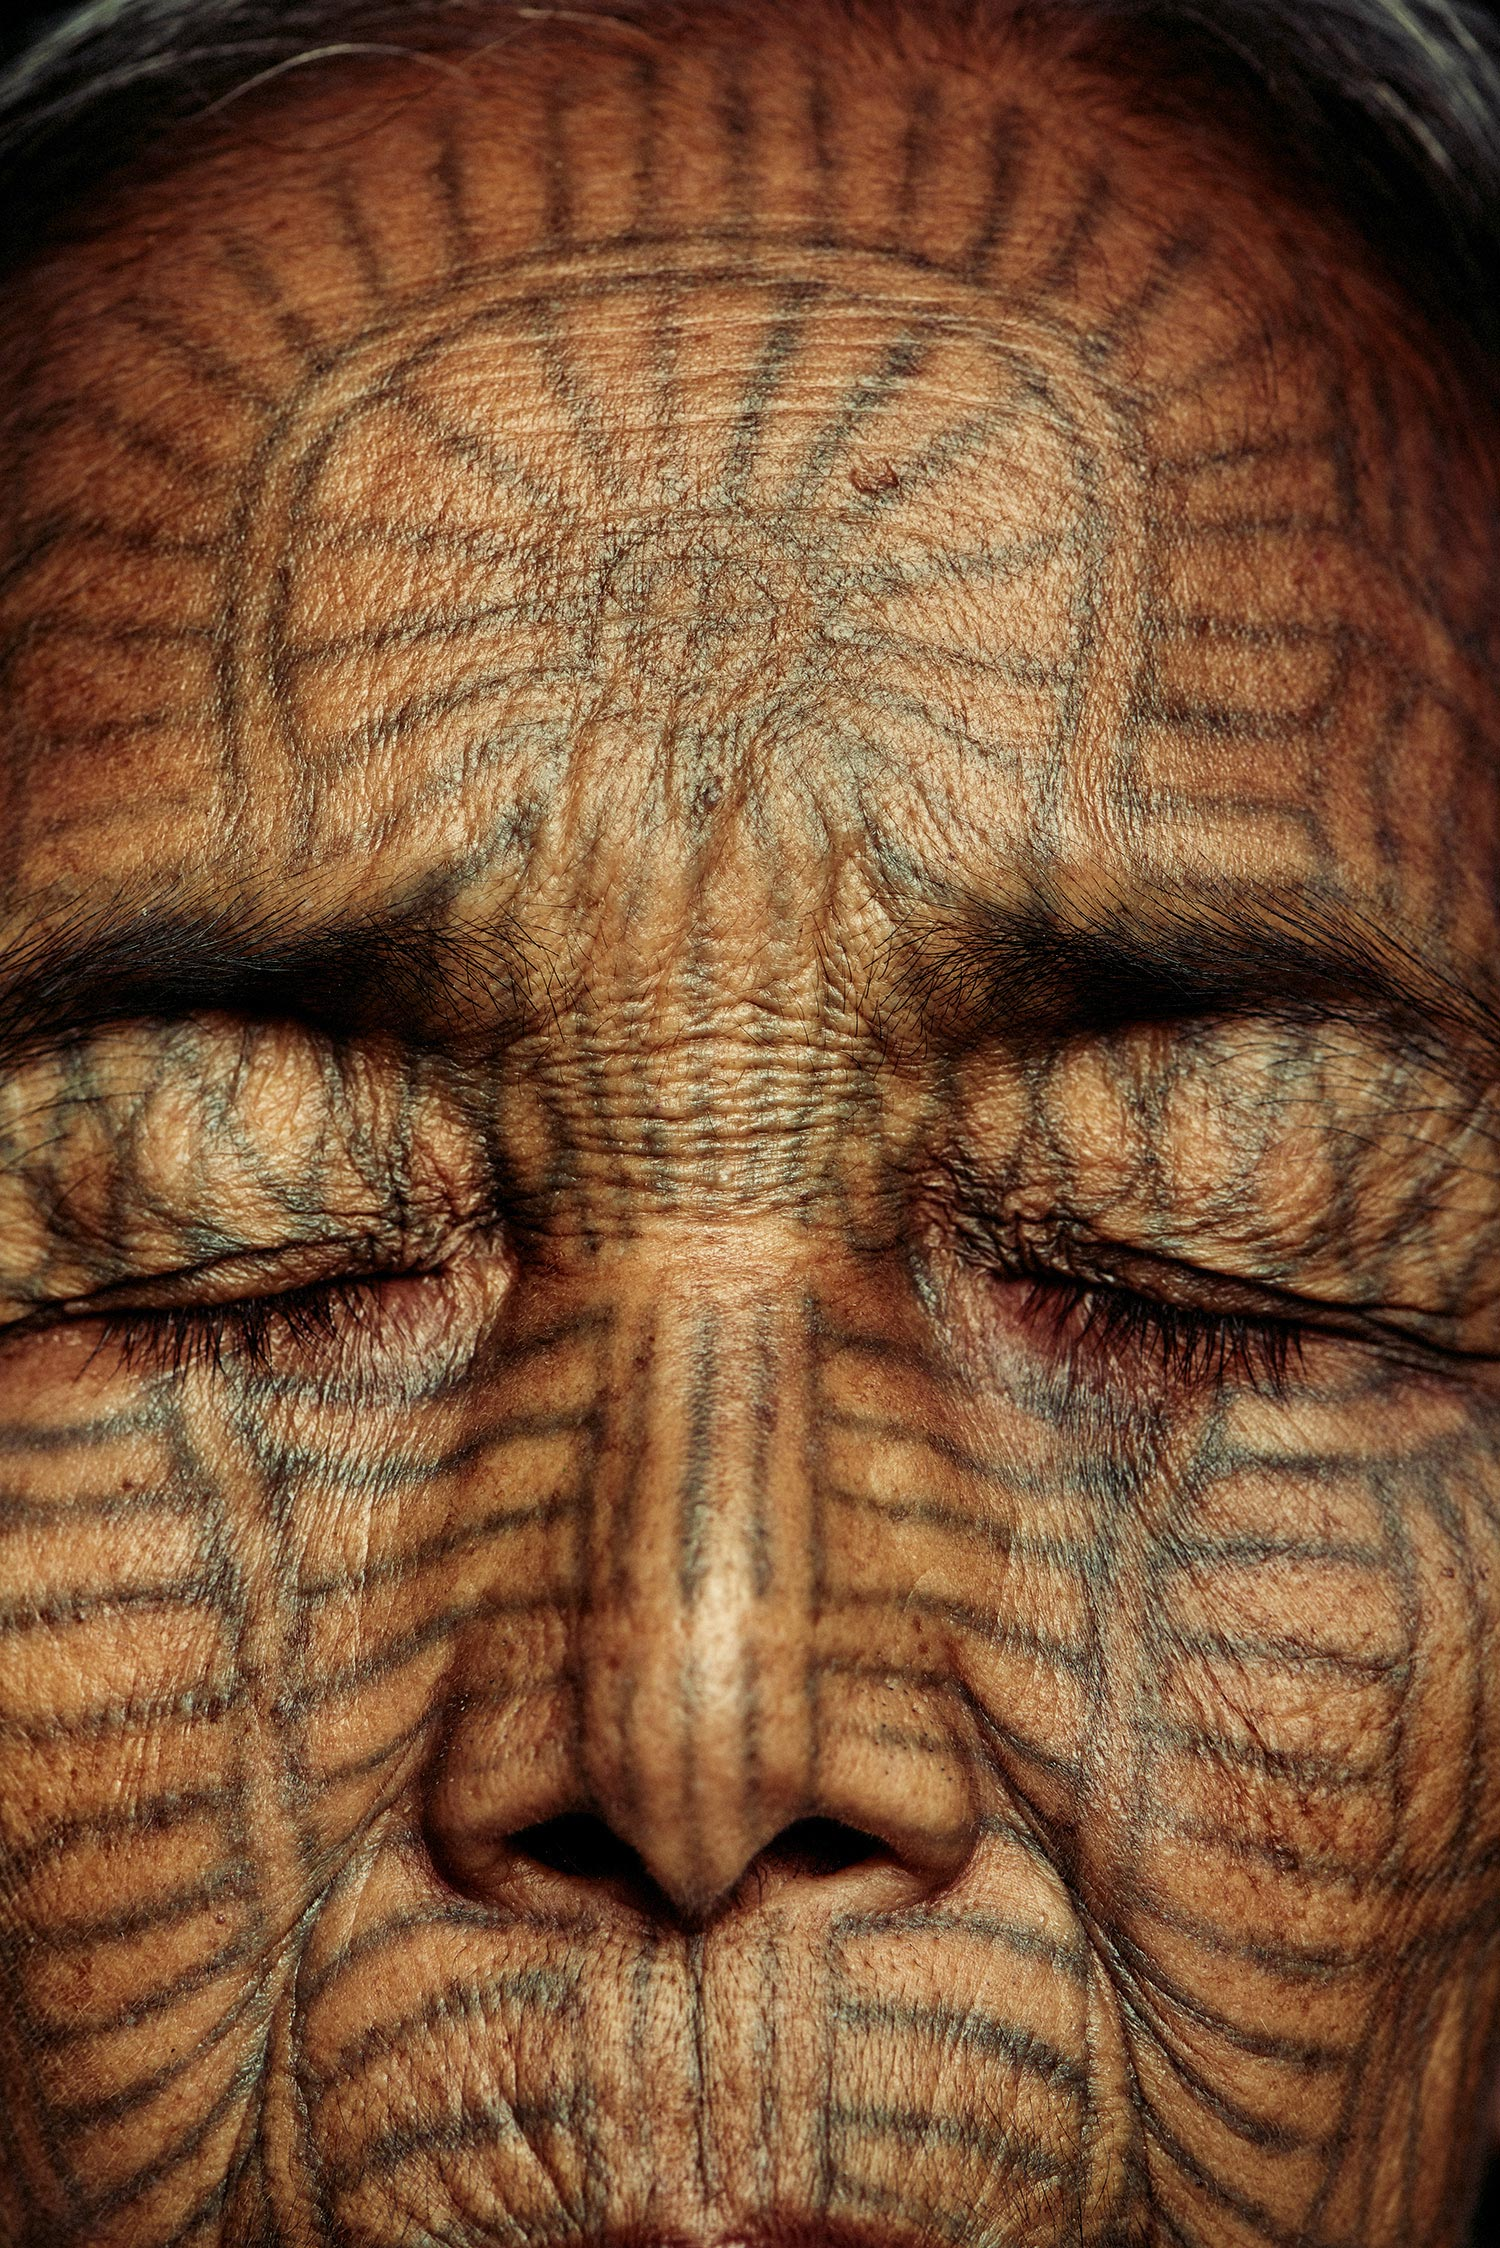 Adam Koziol - Chin tribe, close-up